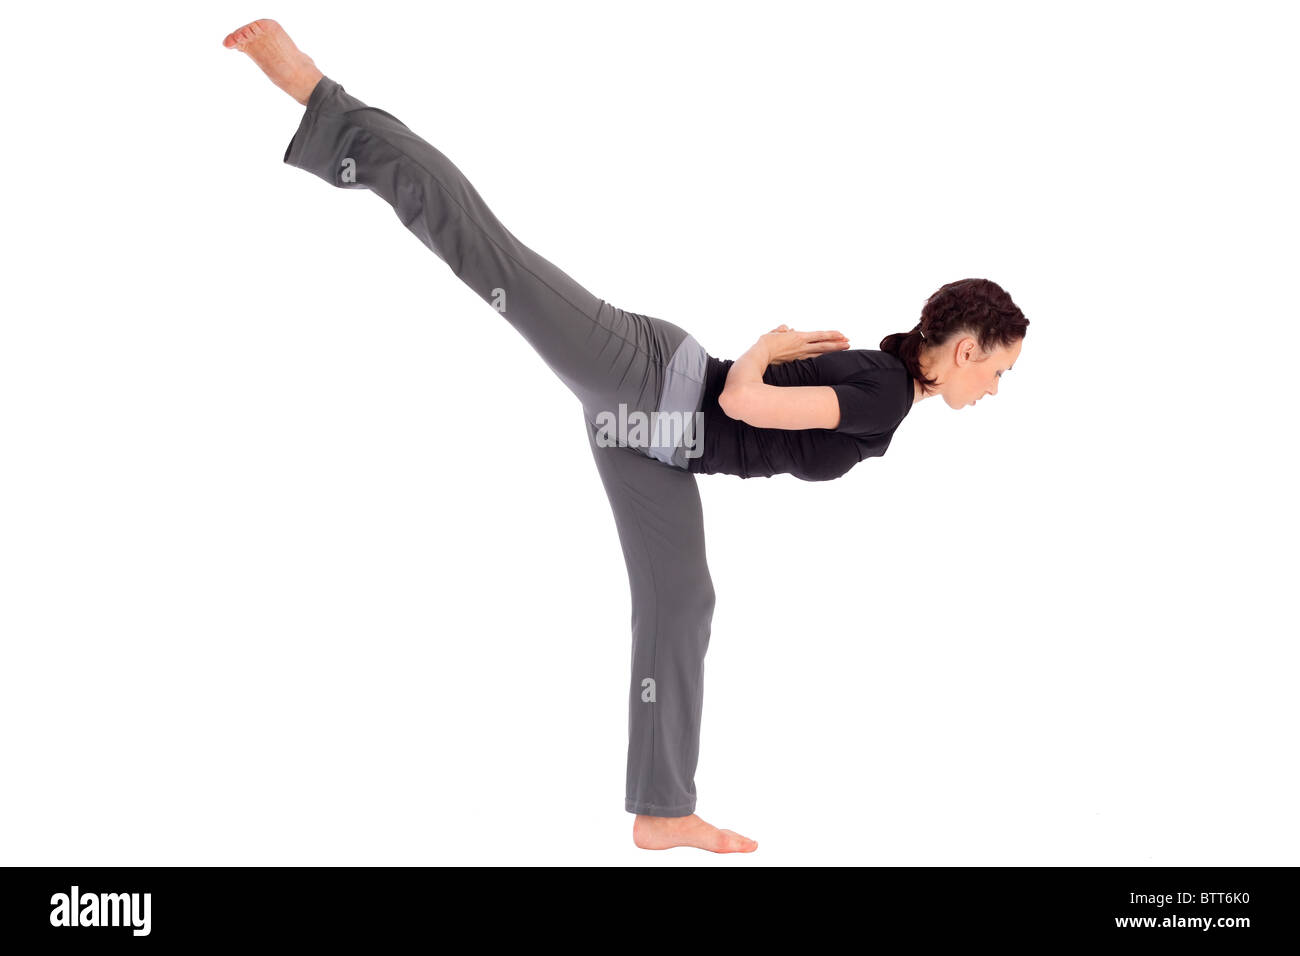 Young fit woman doing yoga asana (Sanskrit name: Eka Pada Hamsa Parsvottanasana), isolated on white background. - Stock Image